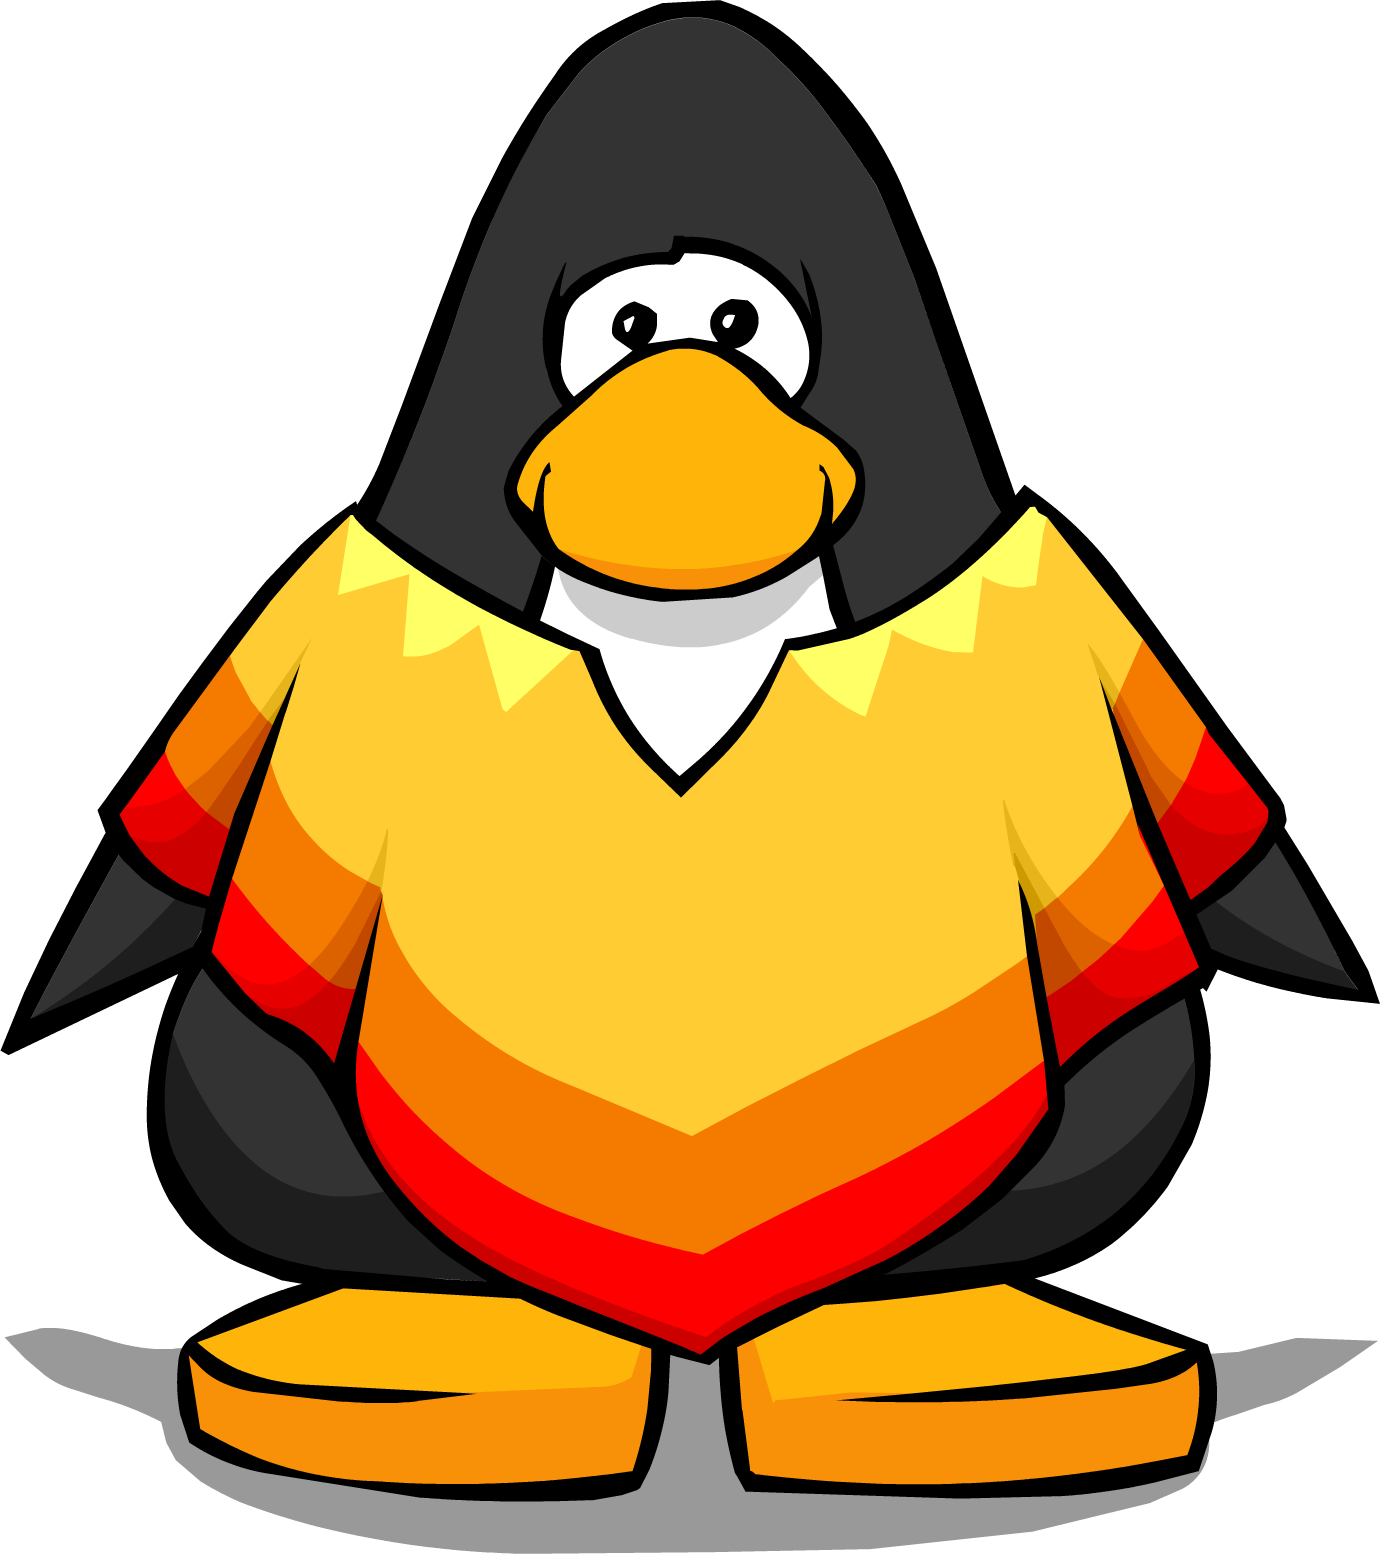 Mexican poncho png. Image from a player